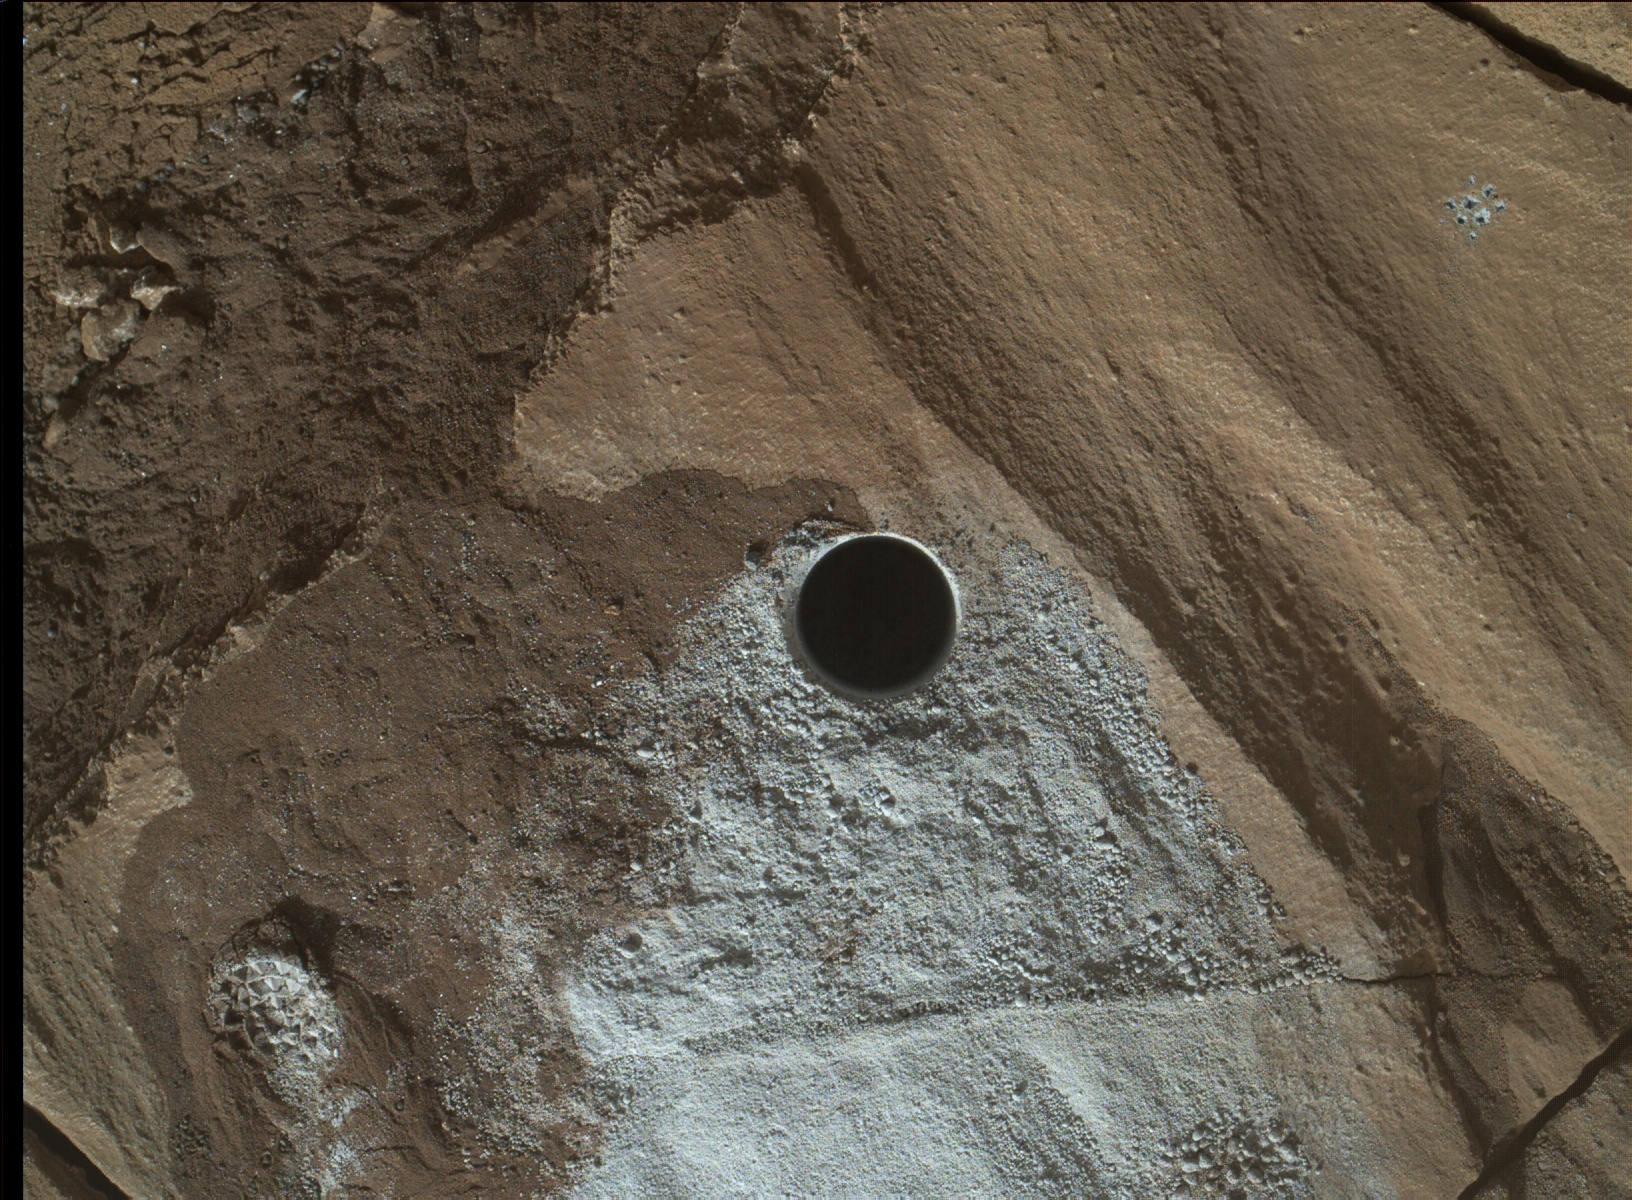 read the article 'Curiosity Update: Drilling at 'Lubango''